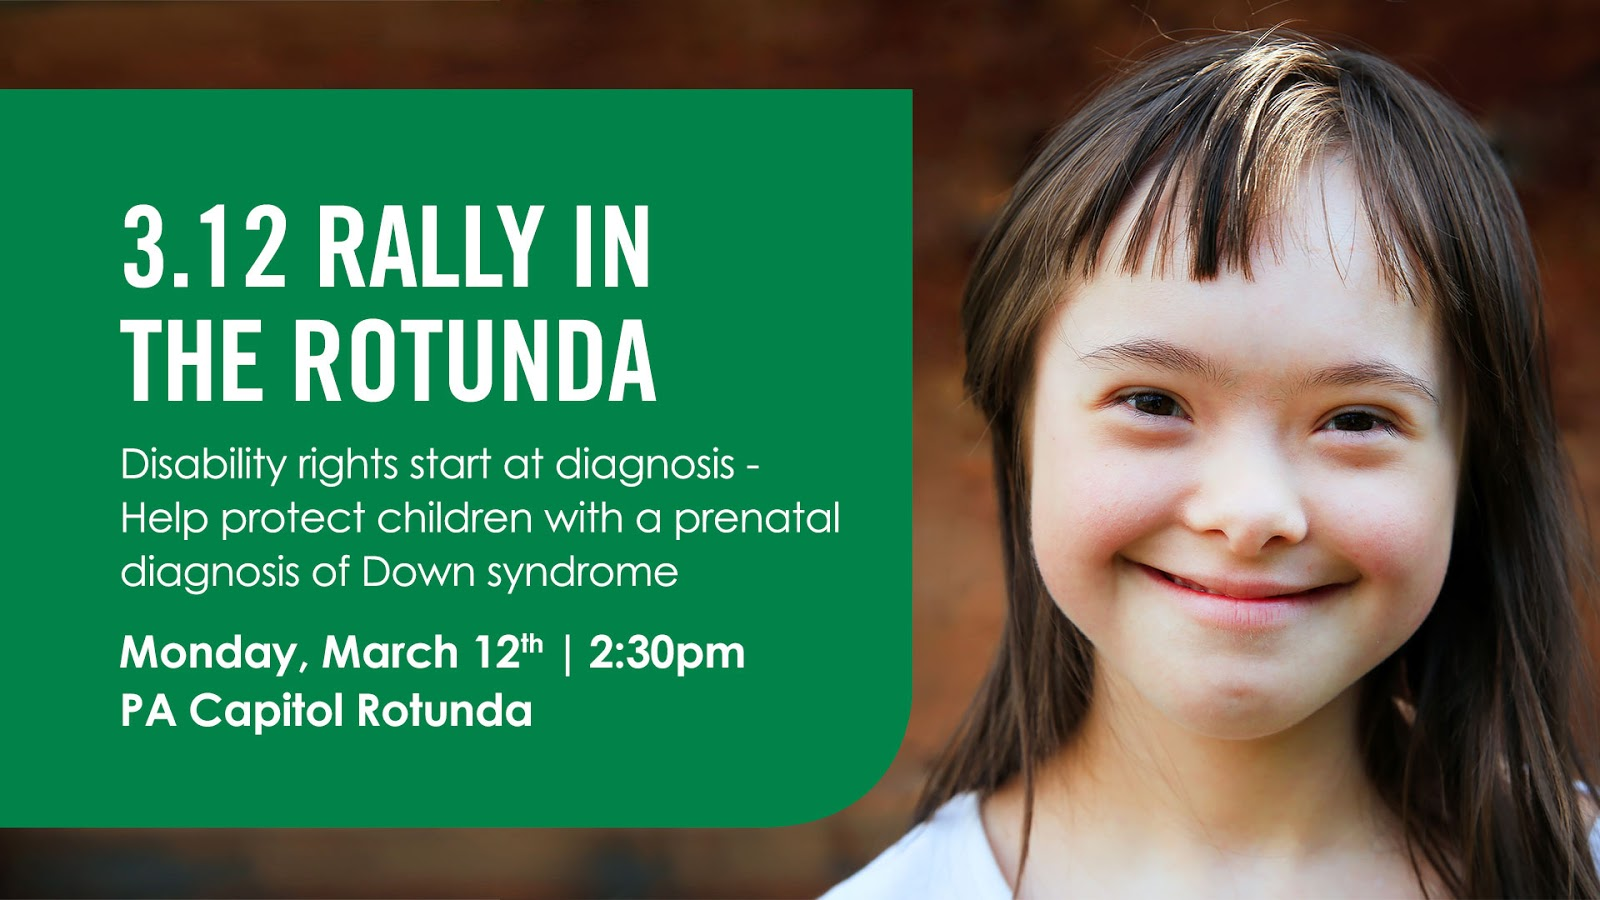 she and other people with down syndrome deserve our utmost respect and that starts with respecting their inherent right to life